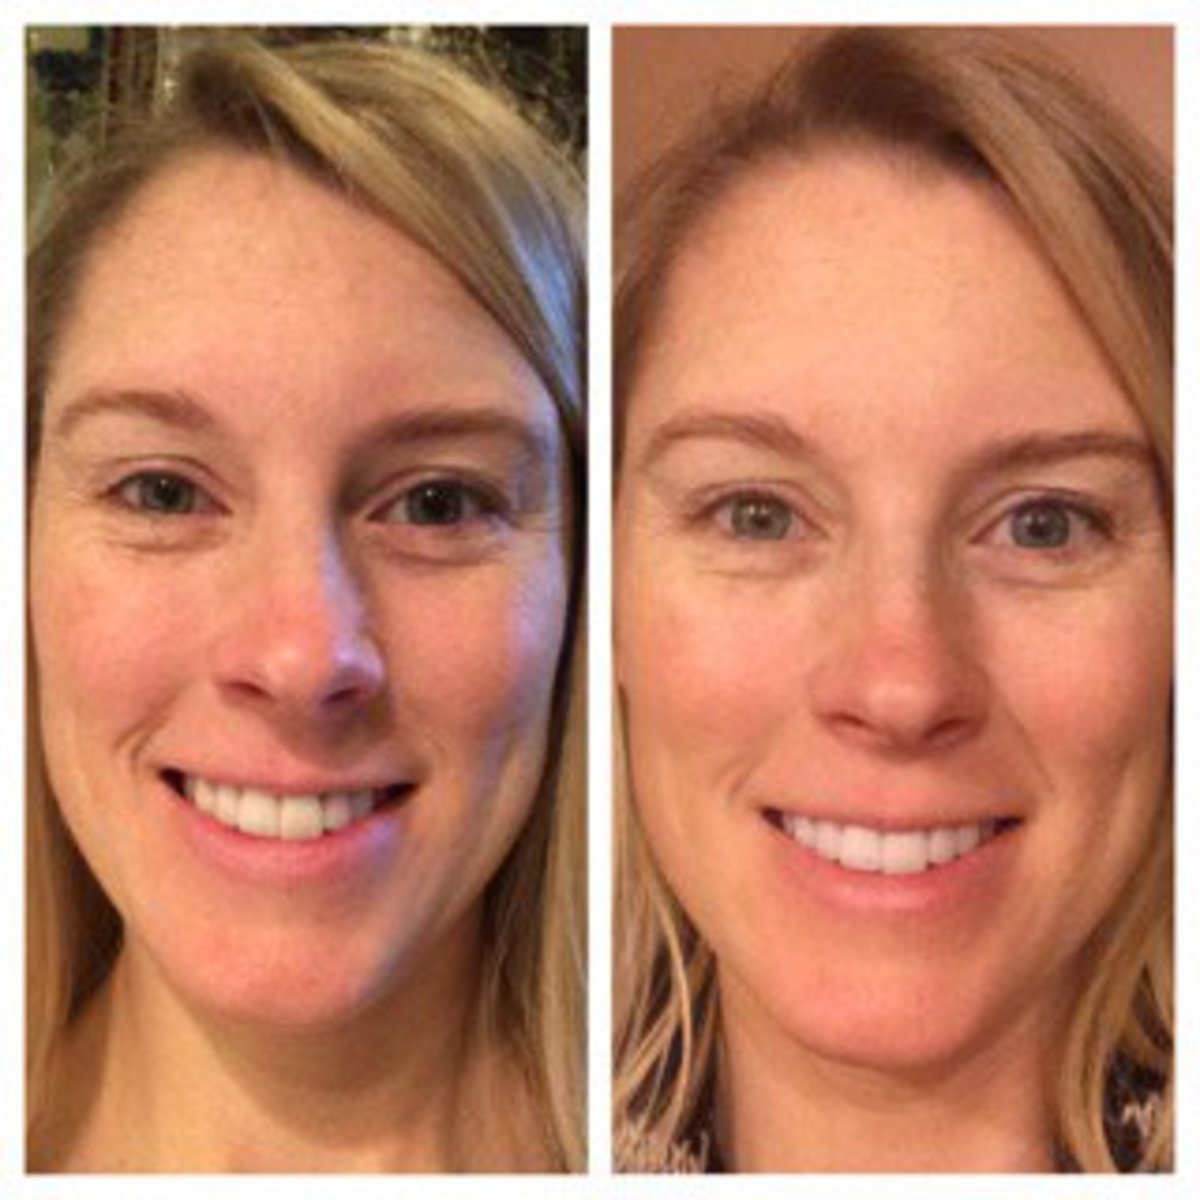 Drink more water ~ before and after pictures - Lindaland